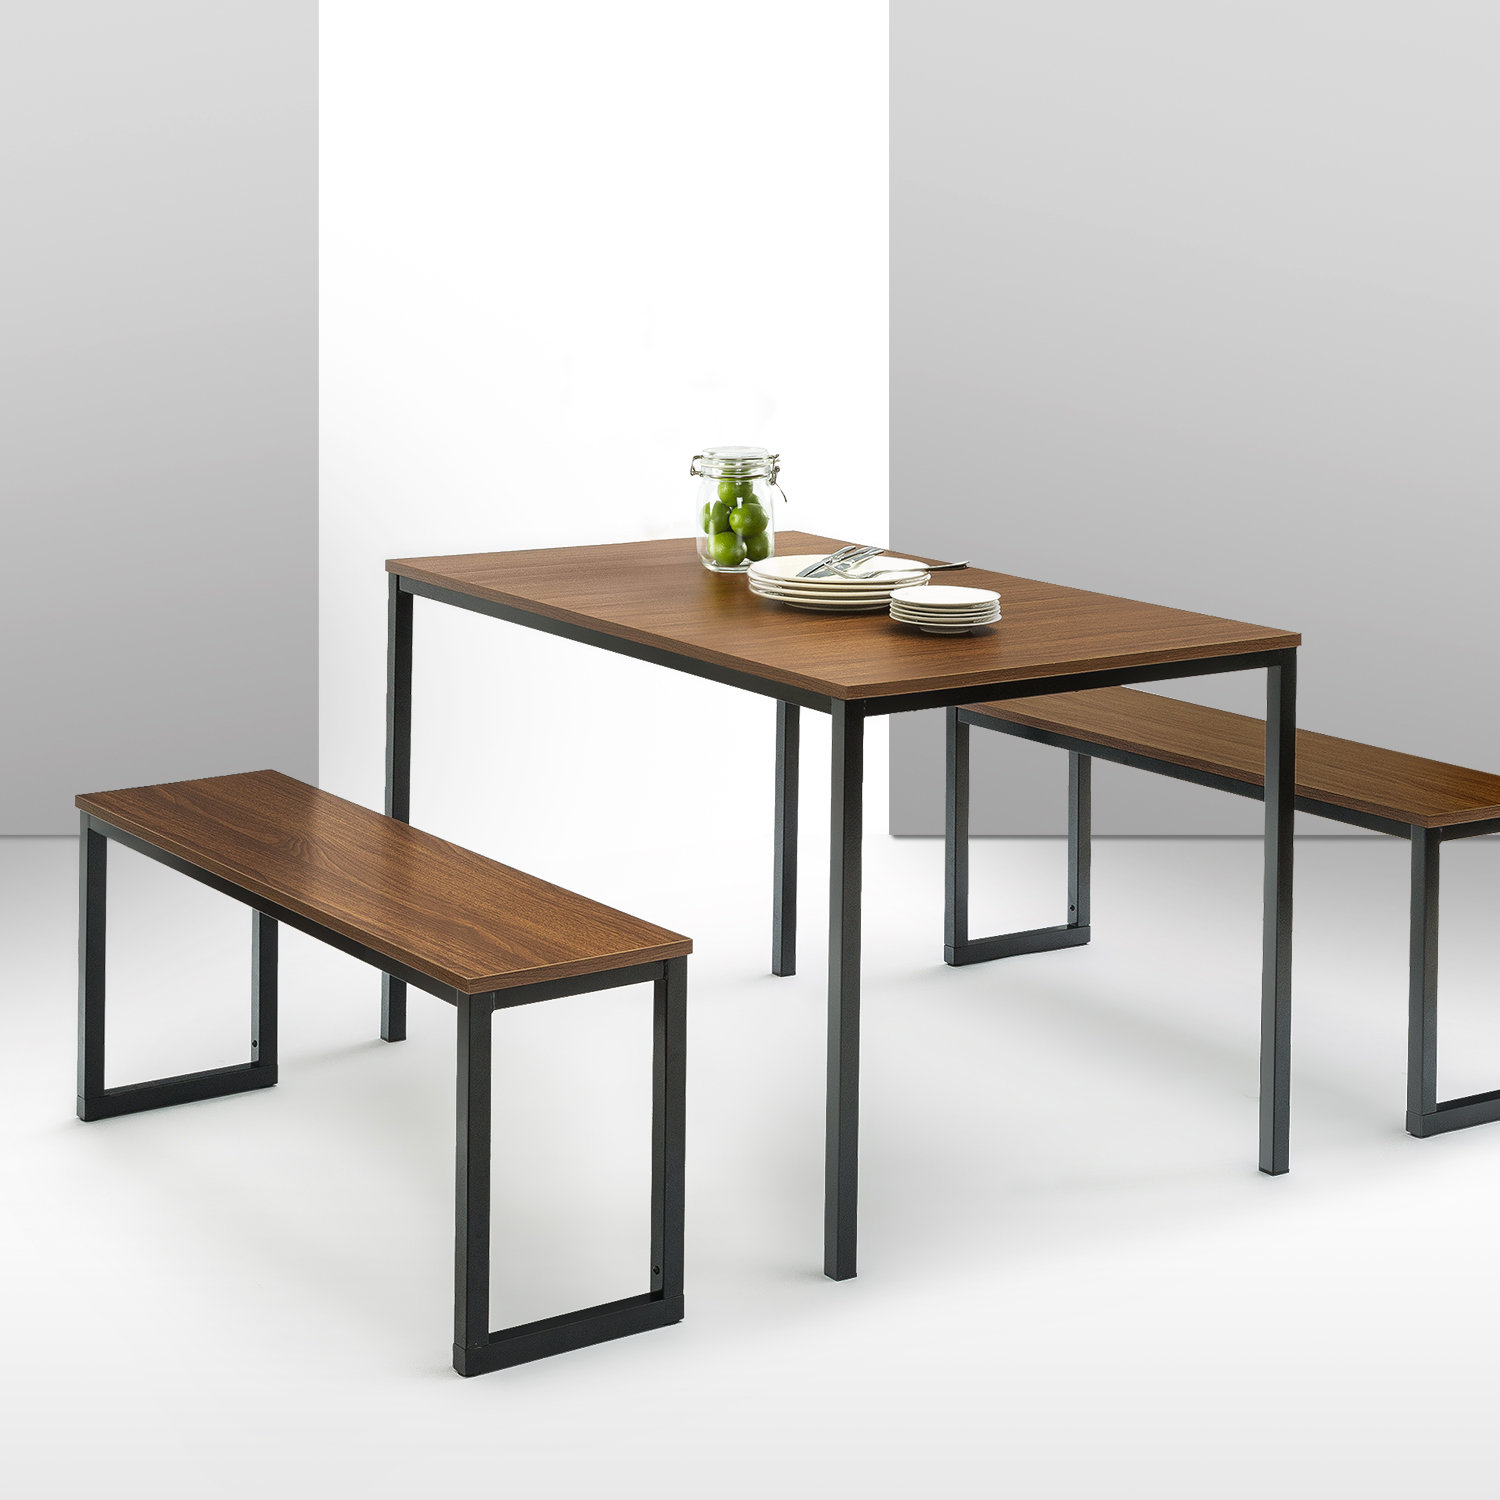 Debby Small Space 3 Piece Dining Sets Intended For Famous Frida 3 Piece Dining Table Set & Reviews (#3 of 20)